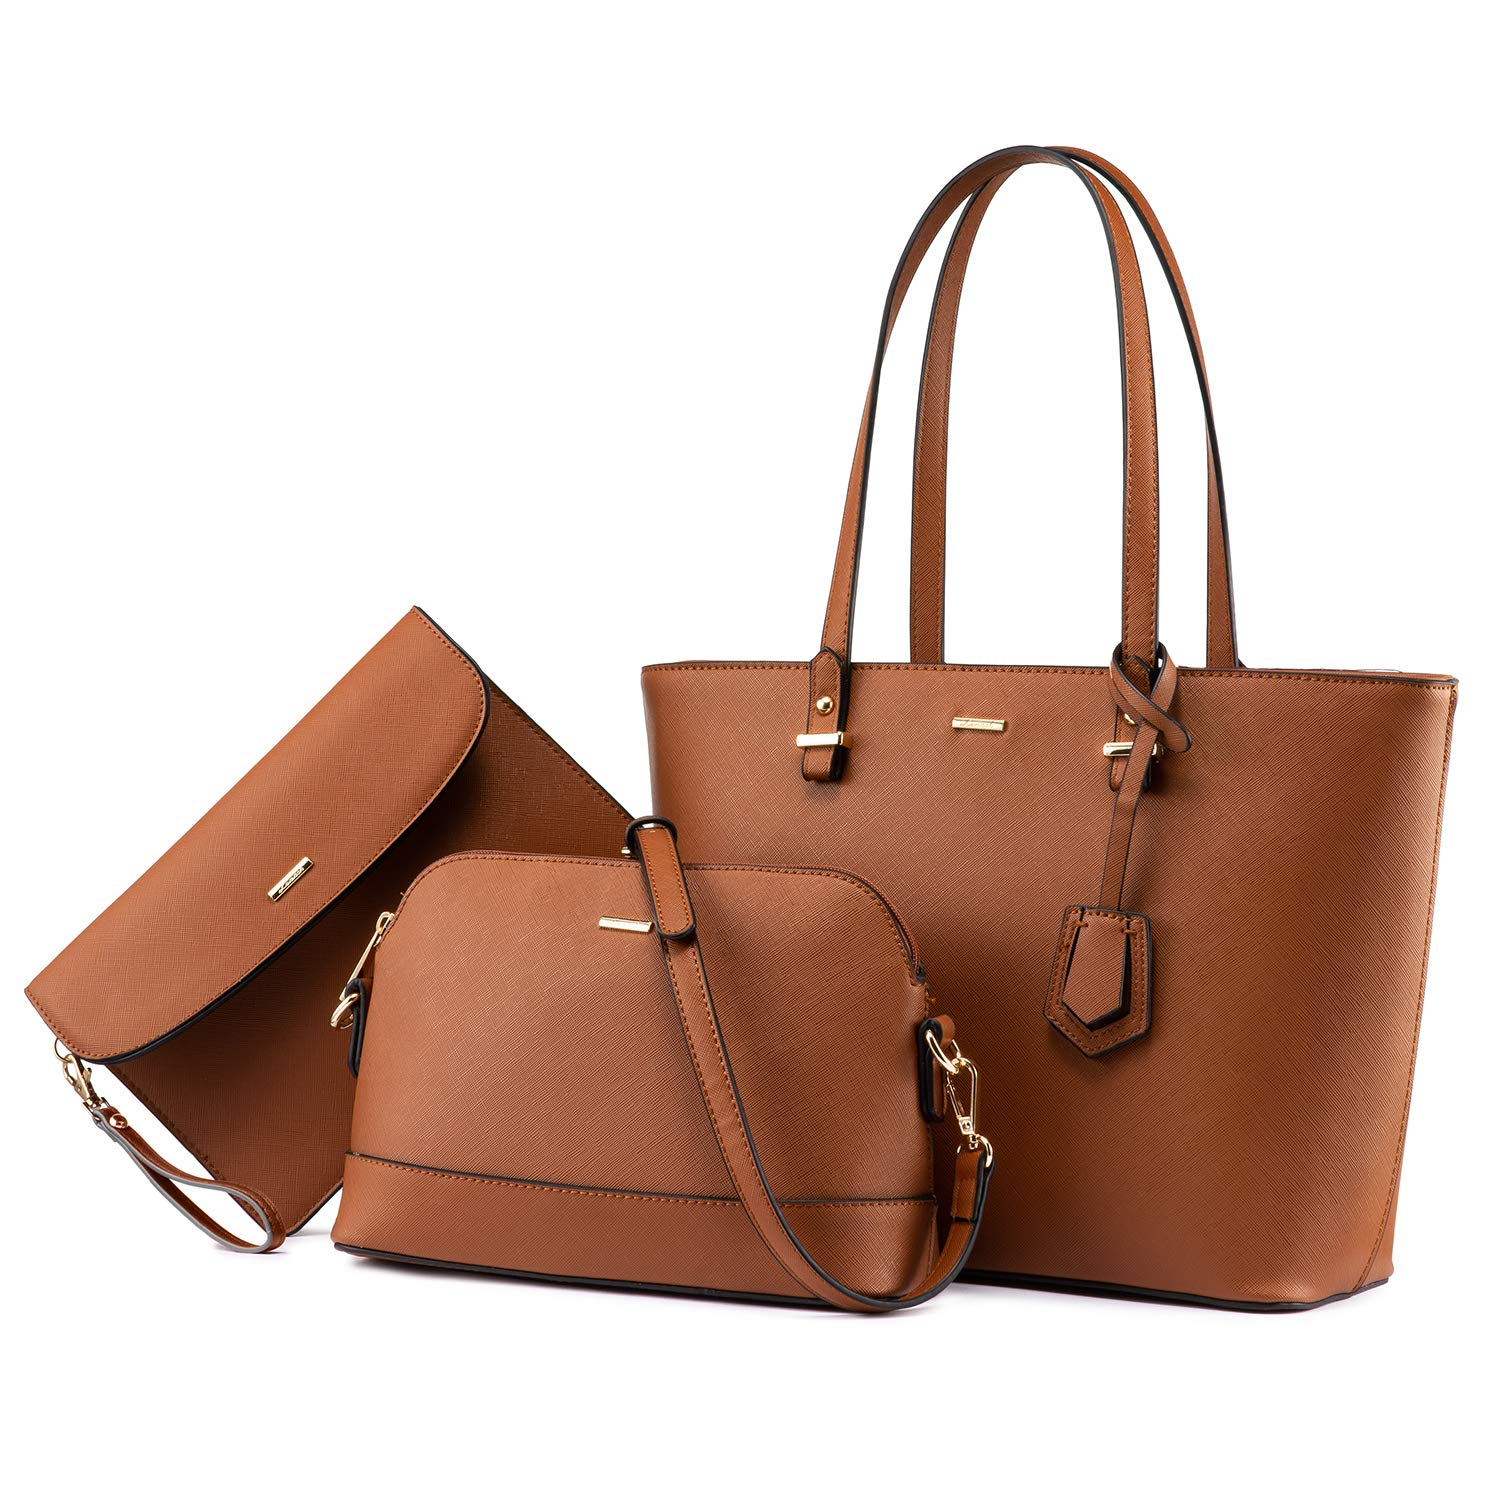 Handbags for Women Tote Bag Fashion Satchel Purse Set Hobo Shoulder Bags Designer Purses 3PCS PU Top Handle Structured Gift Fashion Brown by LOVEVOOK